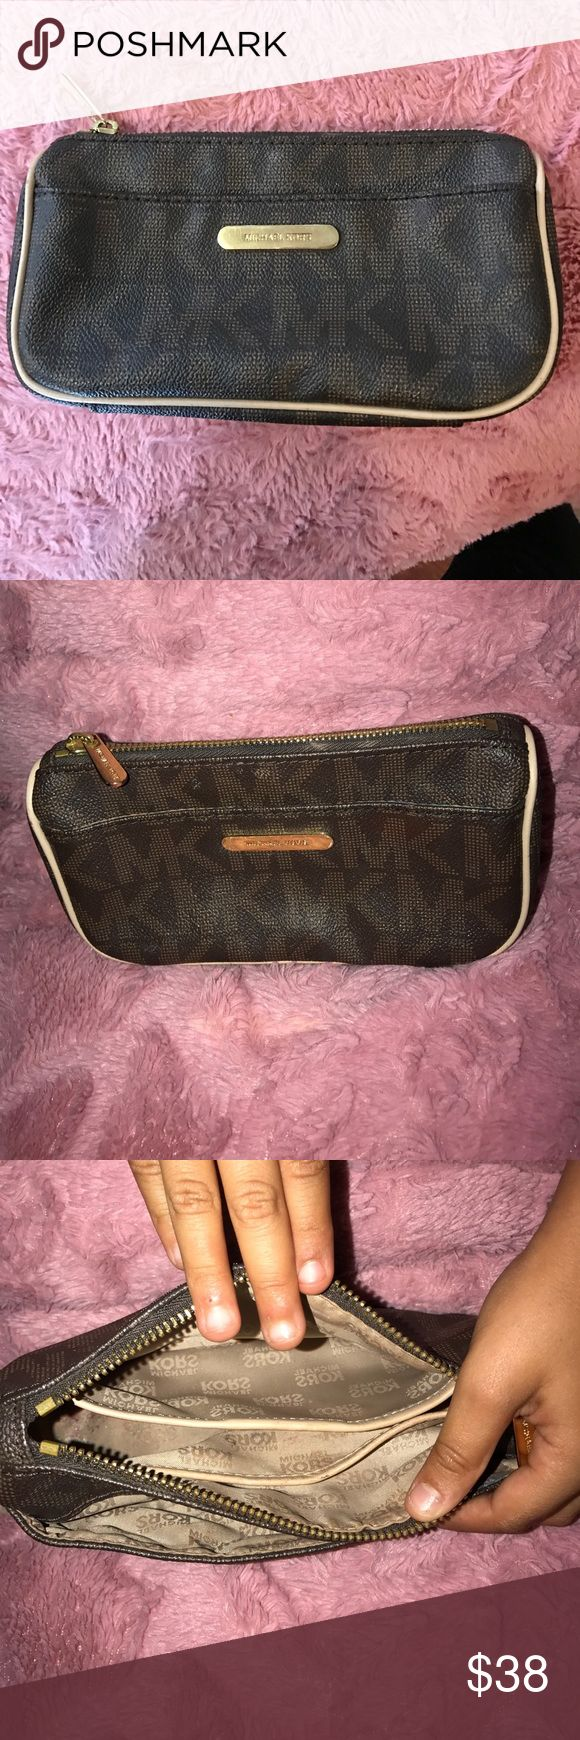 Michael Kors makeup bag Authentic MK makeup bag previous loved makeup stains inside snow makeup marks on front and back like as shown on pictures Michael Kors Bags Cosmetic Bags & Cases